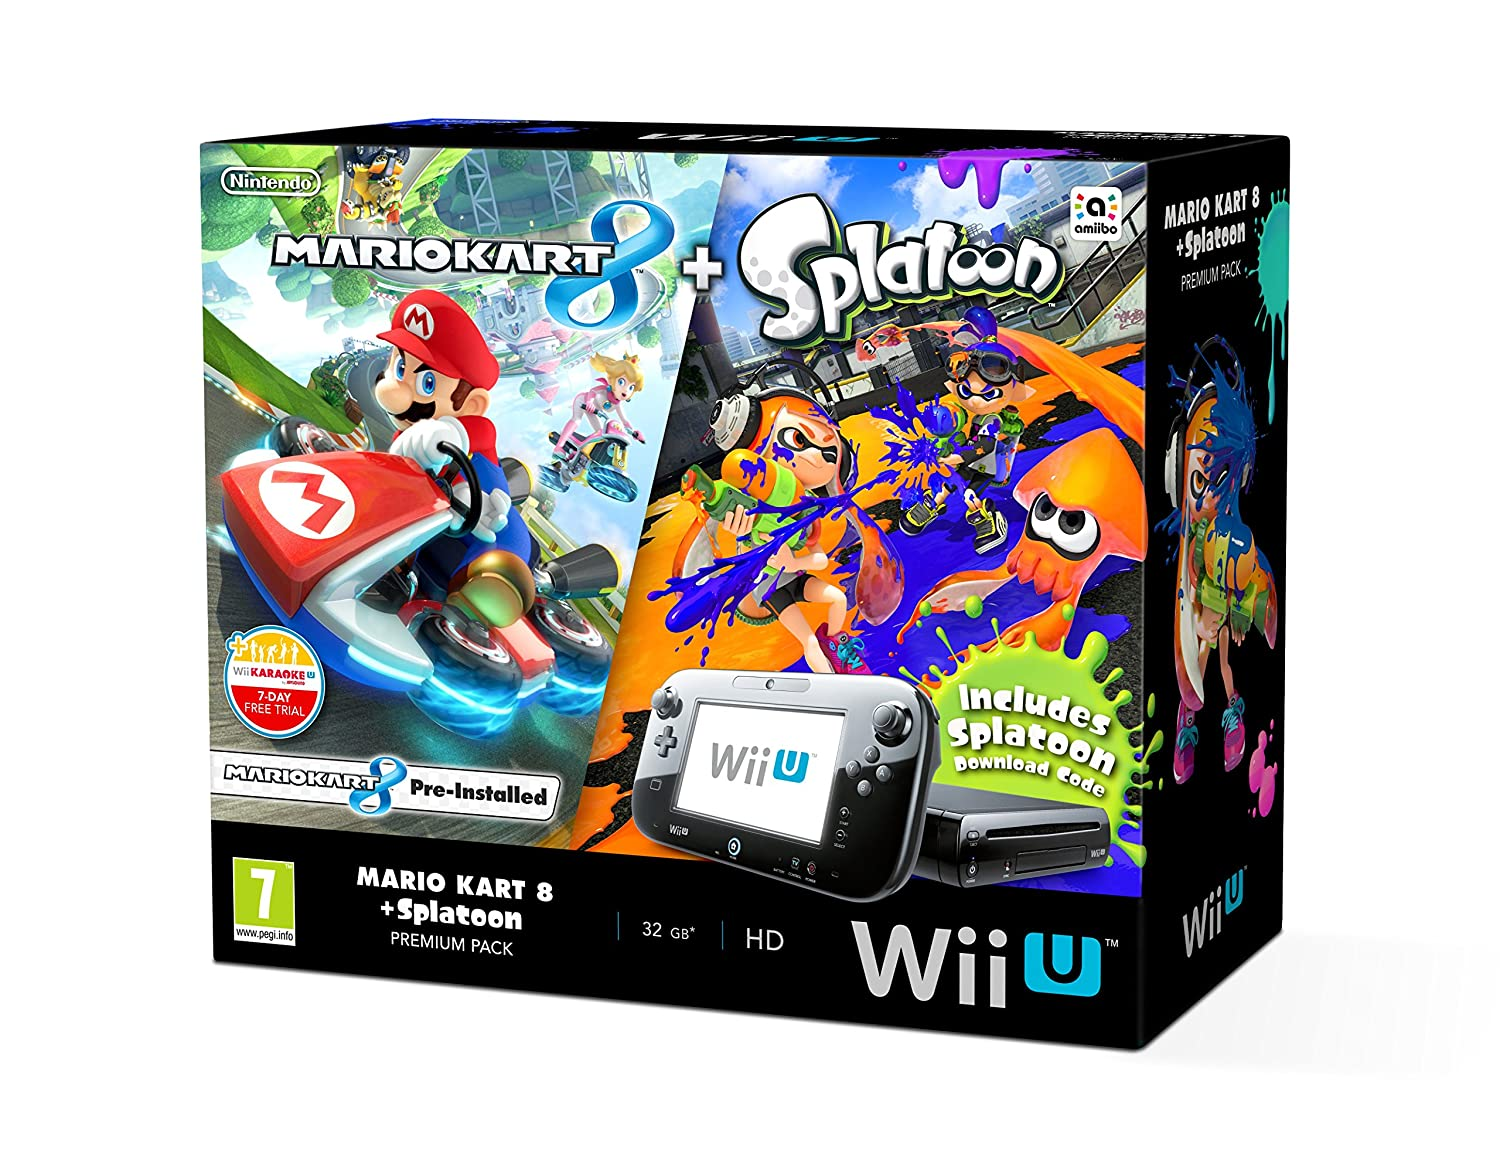 b5f2348b24b Nintendo Wii U 32GB Mario Kart 8 and Splatoon Premium Pack - Black:  Amazon.co.uk: PC & Video Games